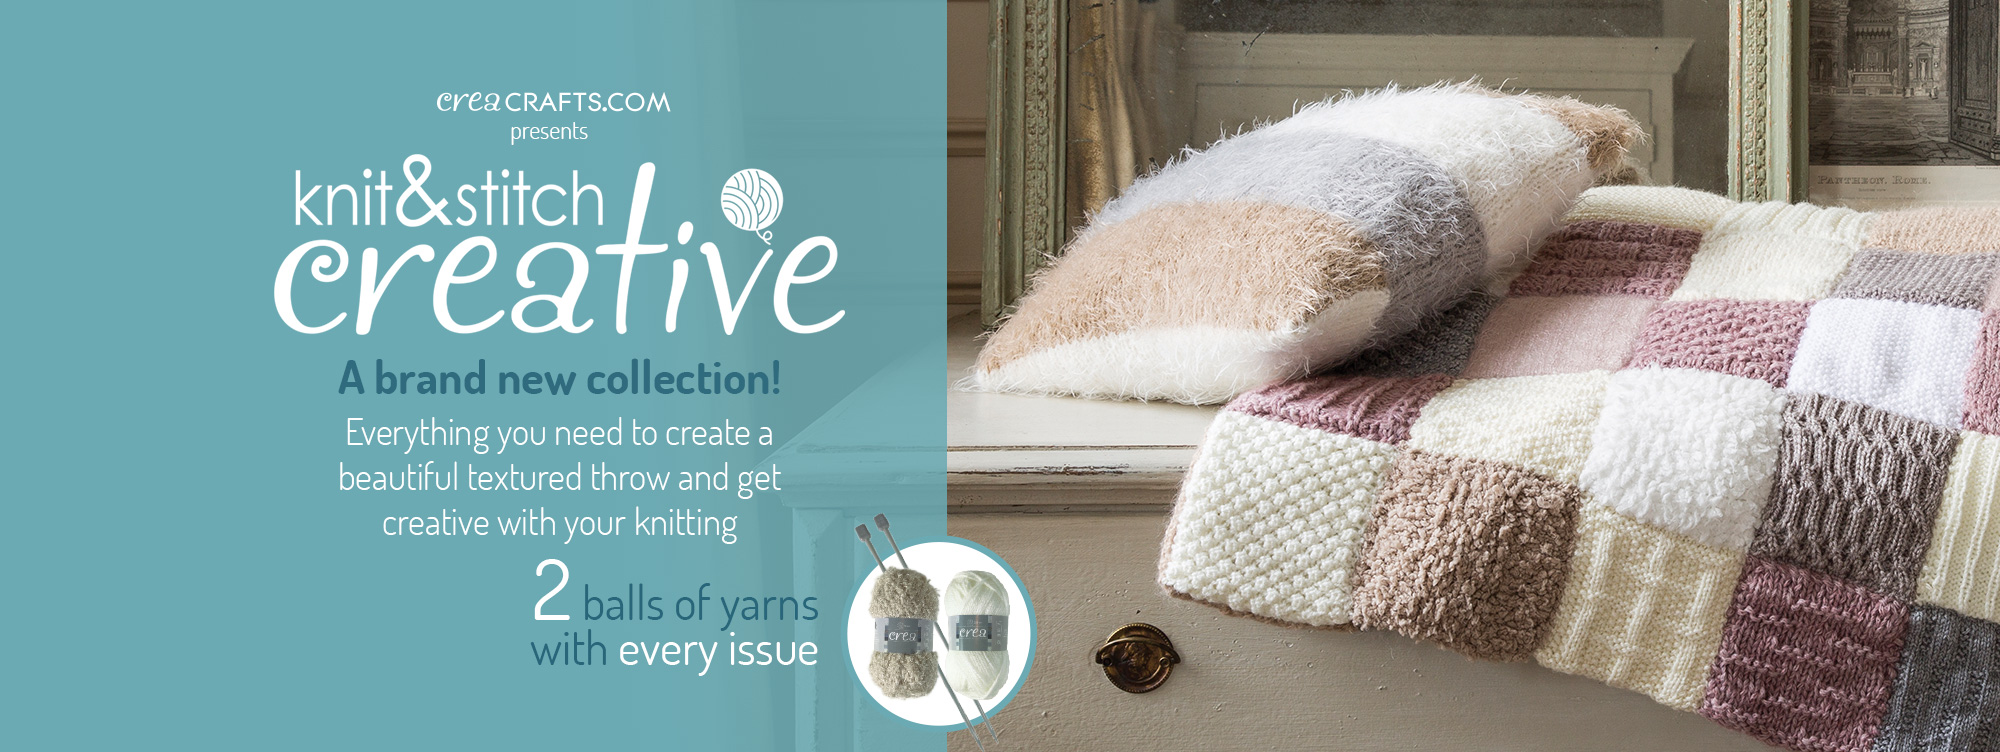 Knit and stitch creative - A brand new collection!